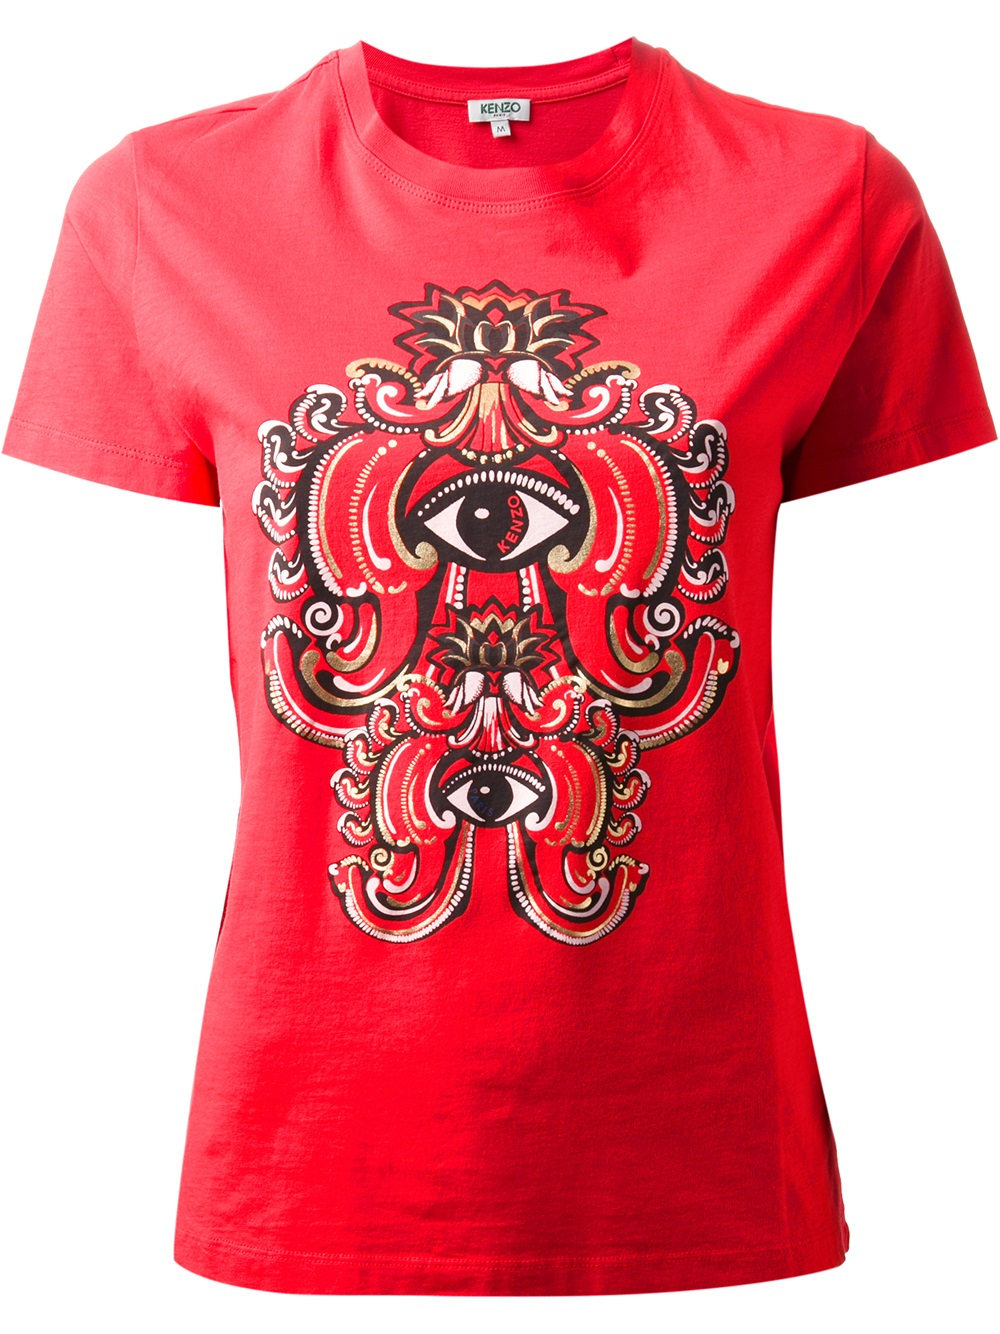 lyst kenzo eye logo tshirt in red. Black Bedroom Furniture Sets. Home Design Ideas